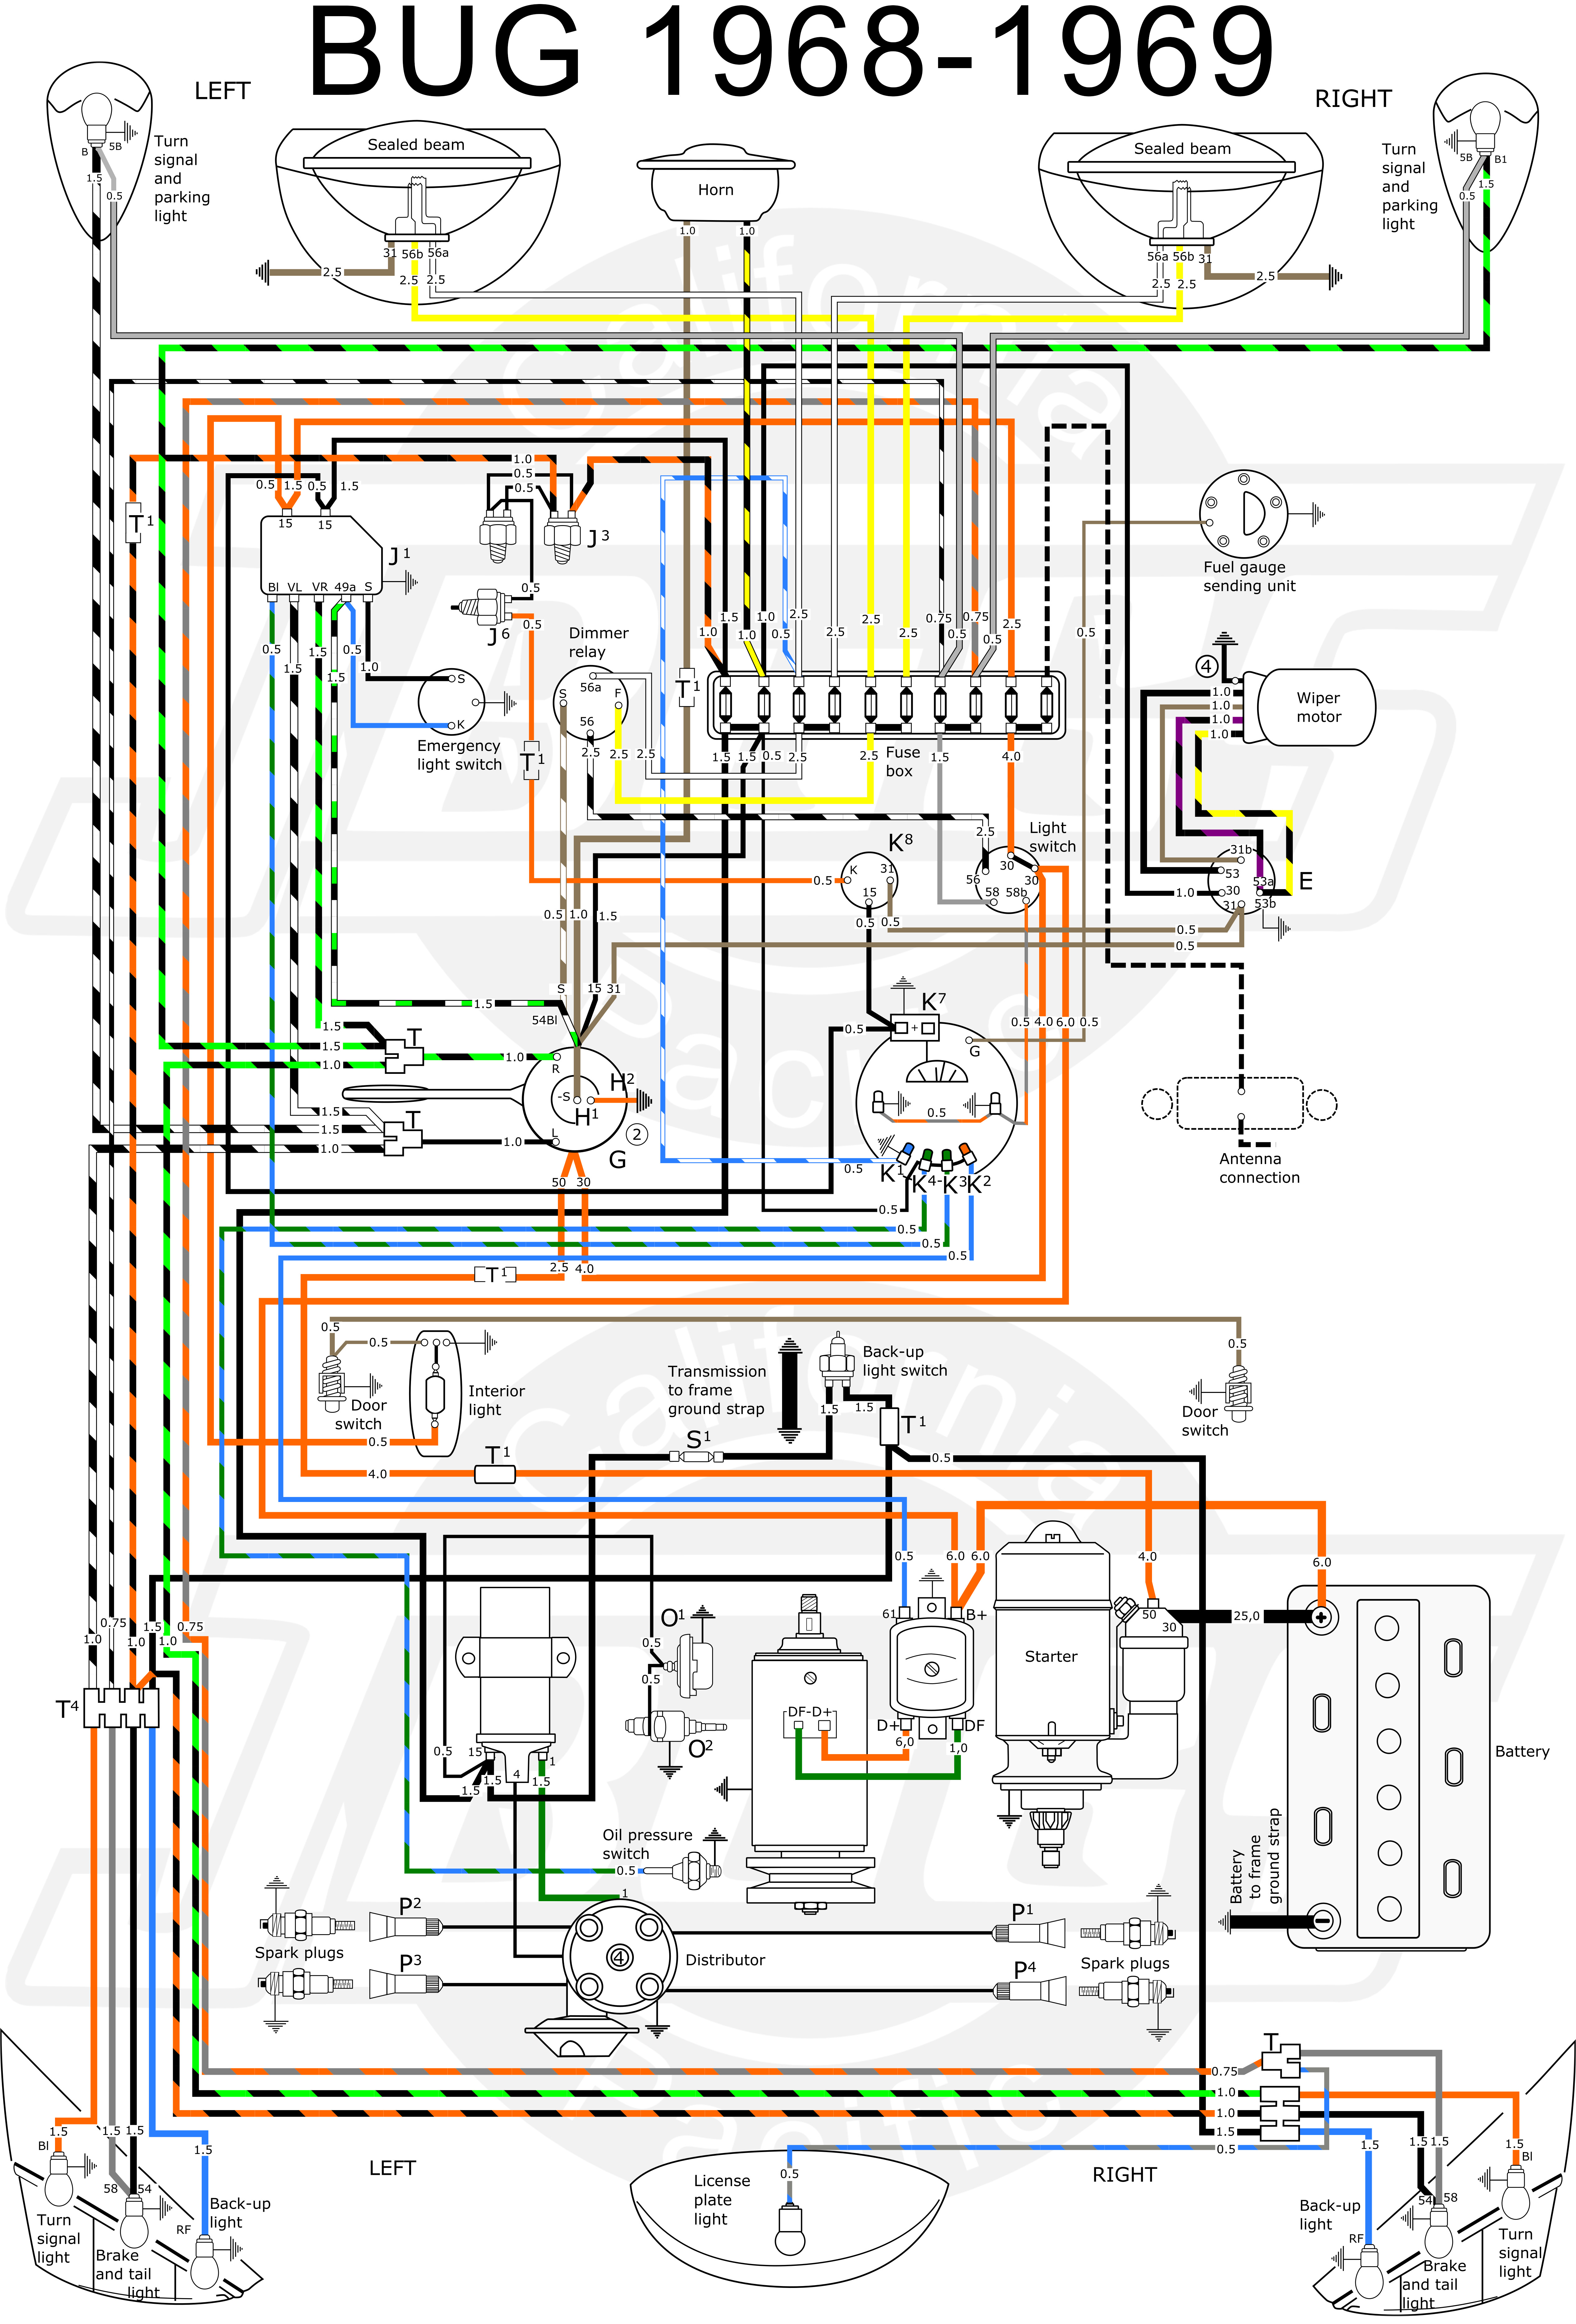 VW Bug 1968 69 Wiring Diagram vw tech article 1968 69 wiring diagram VW Bus Ignition Coil at cos-gaming.co